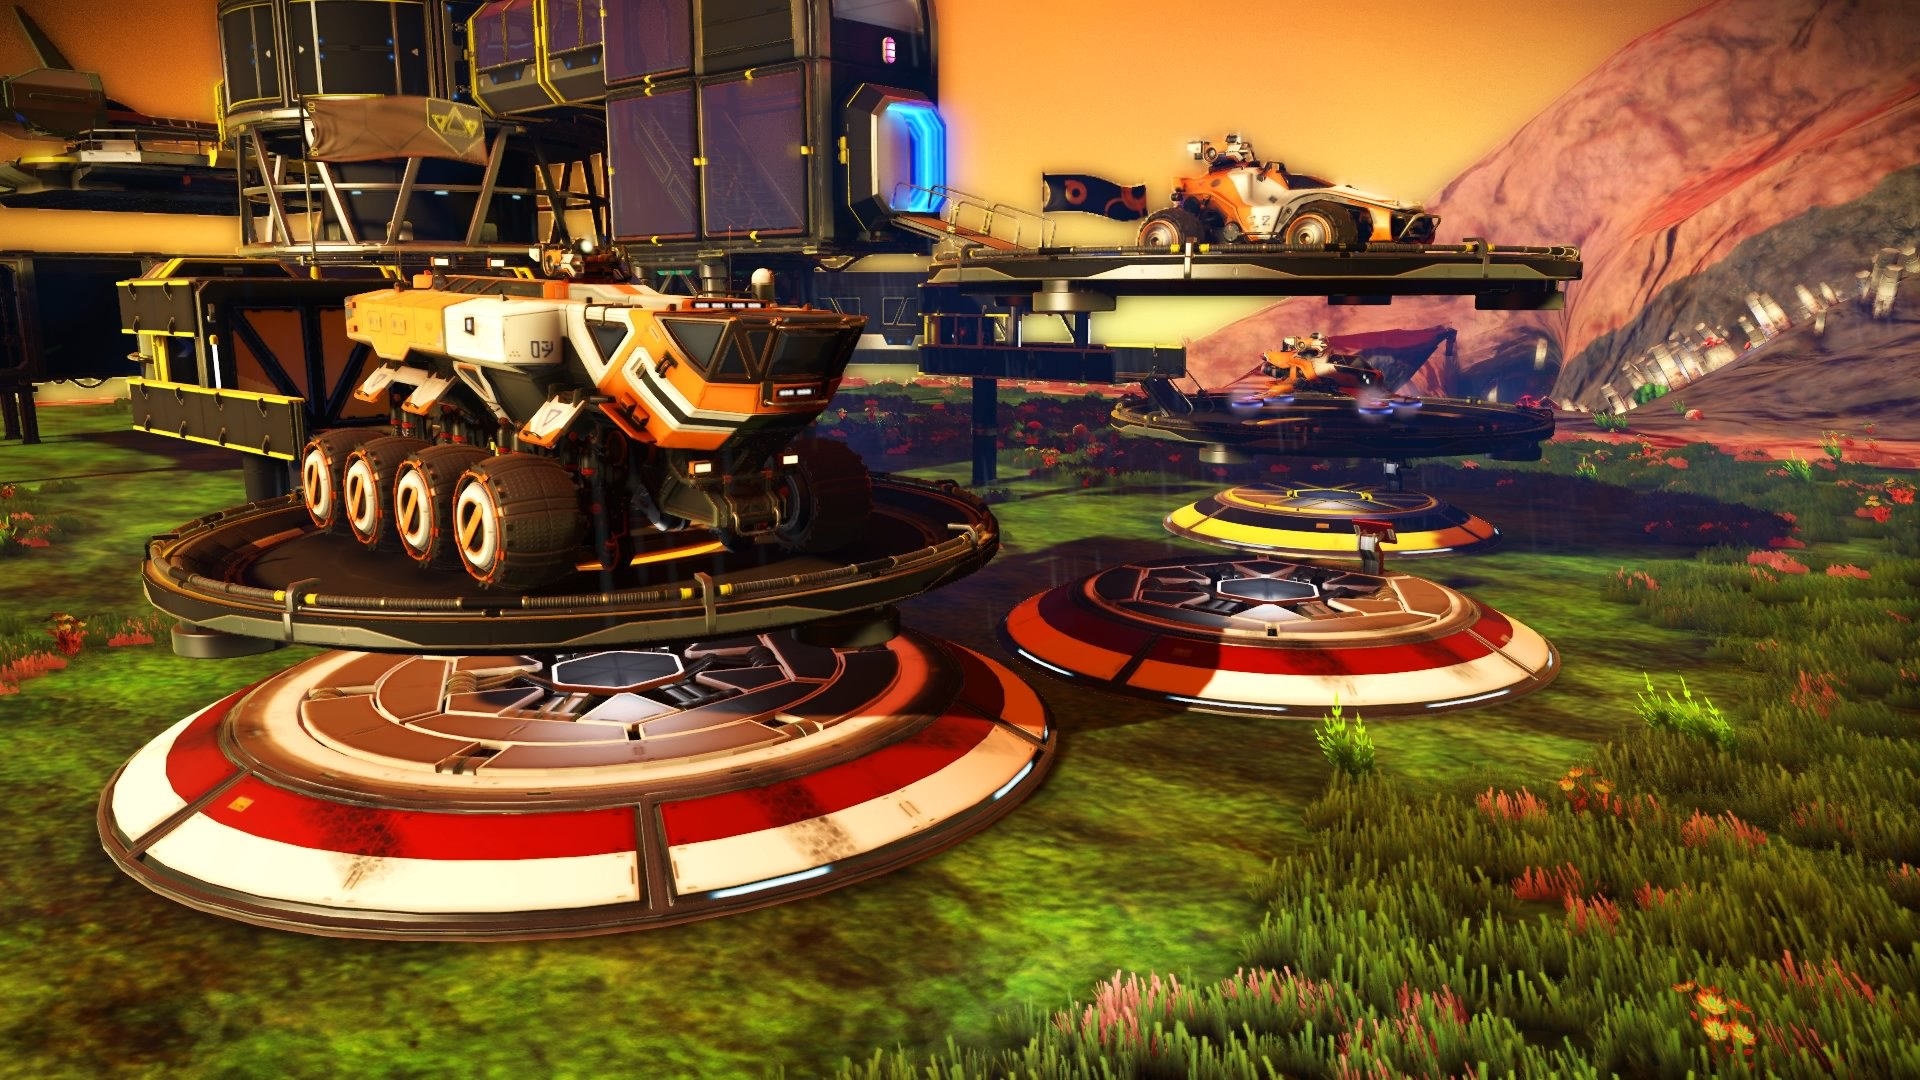 How to get a vehicle in No Man's Sky